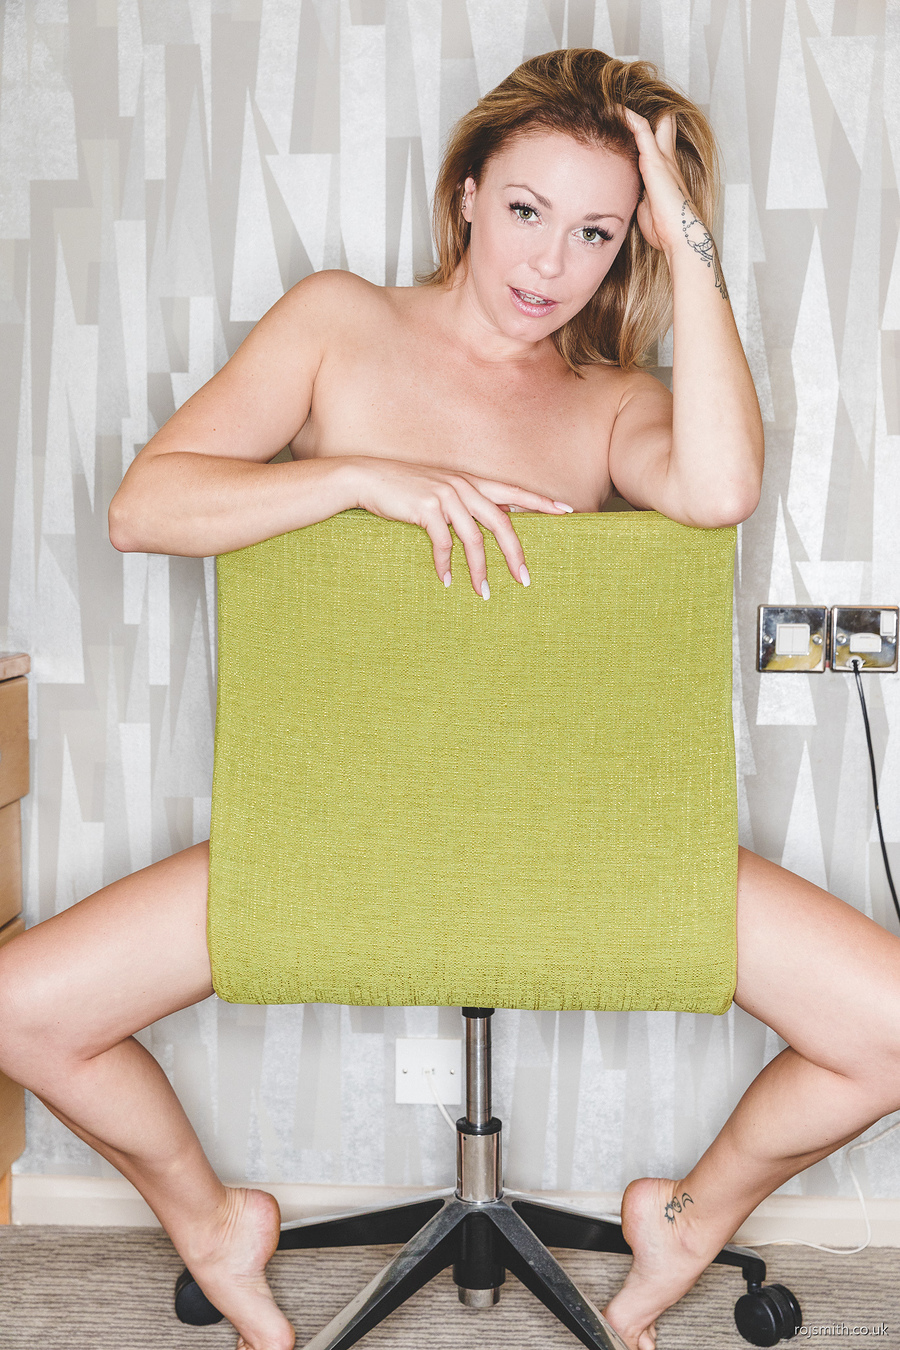 Chair Nude / Photography by Roj Smith, Model UkCuteGirl  Lucy / Uploaded 4th October 2018 @ 08:30 AM